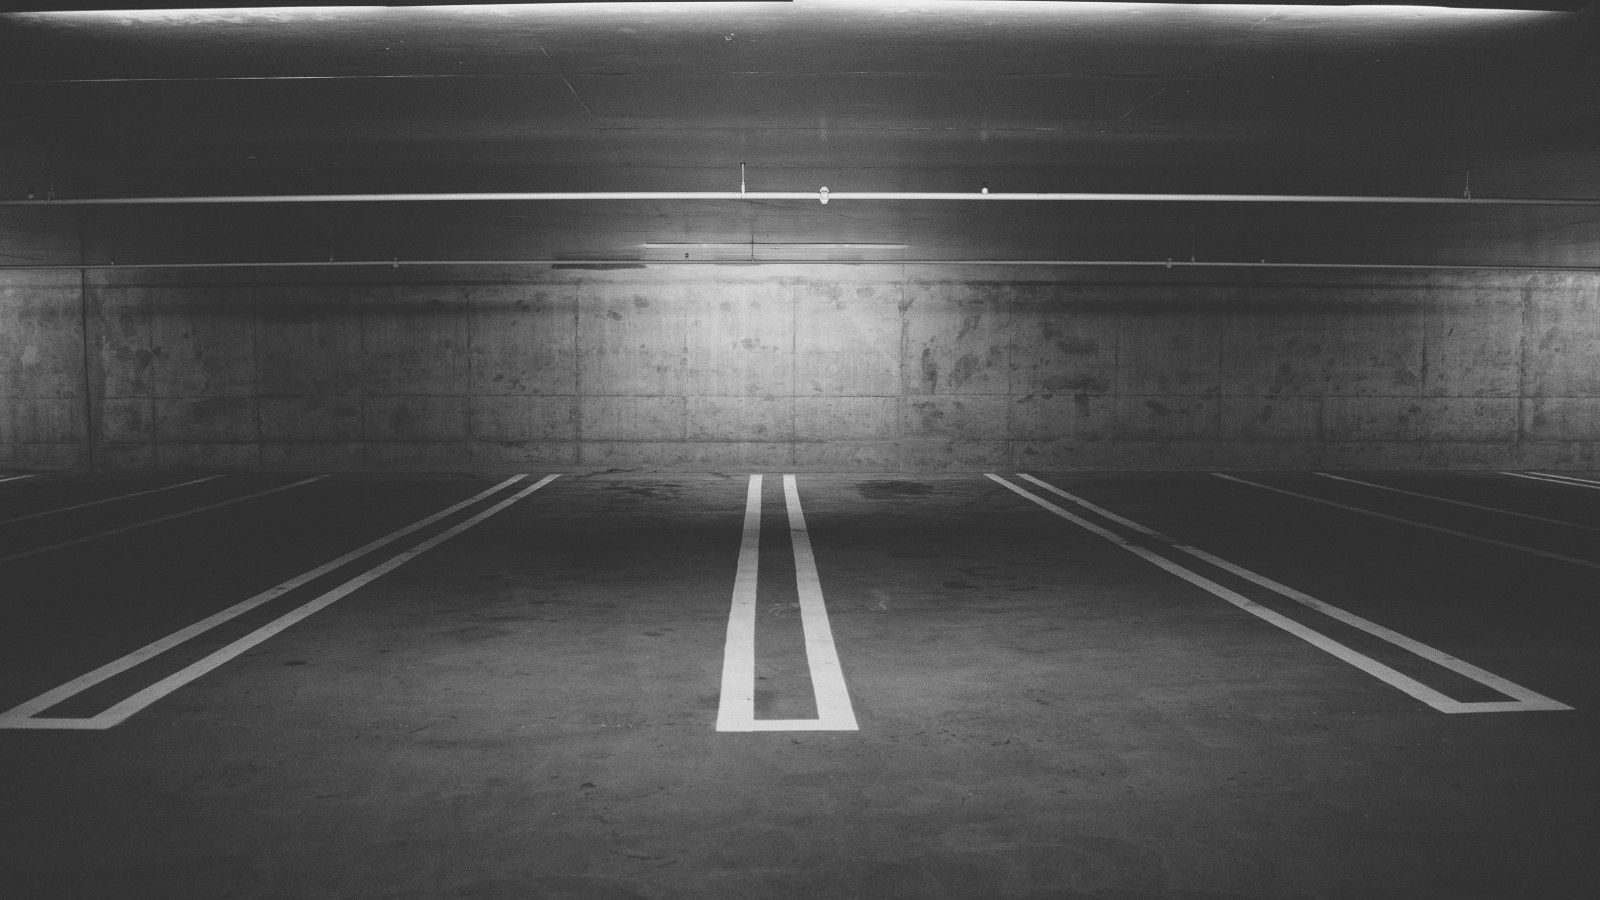 driving - parking deck